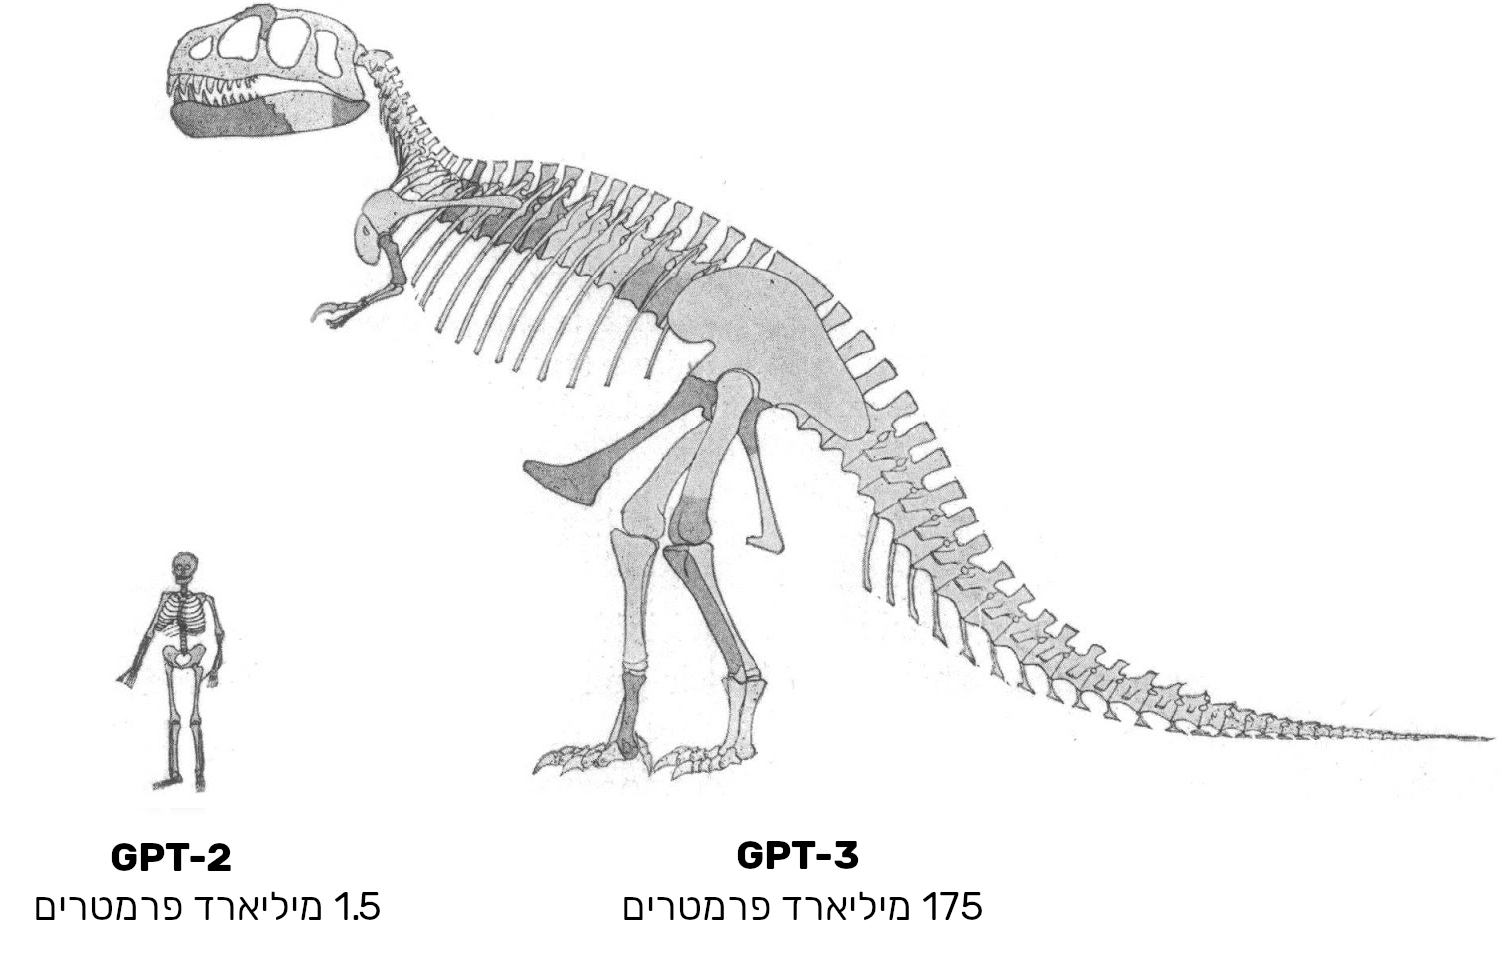 Approximate-size-comparison-of-GPT-2